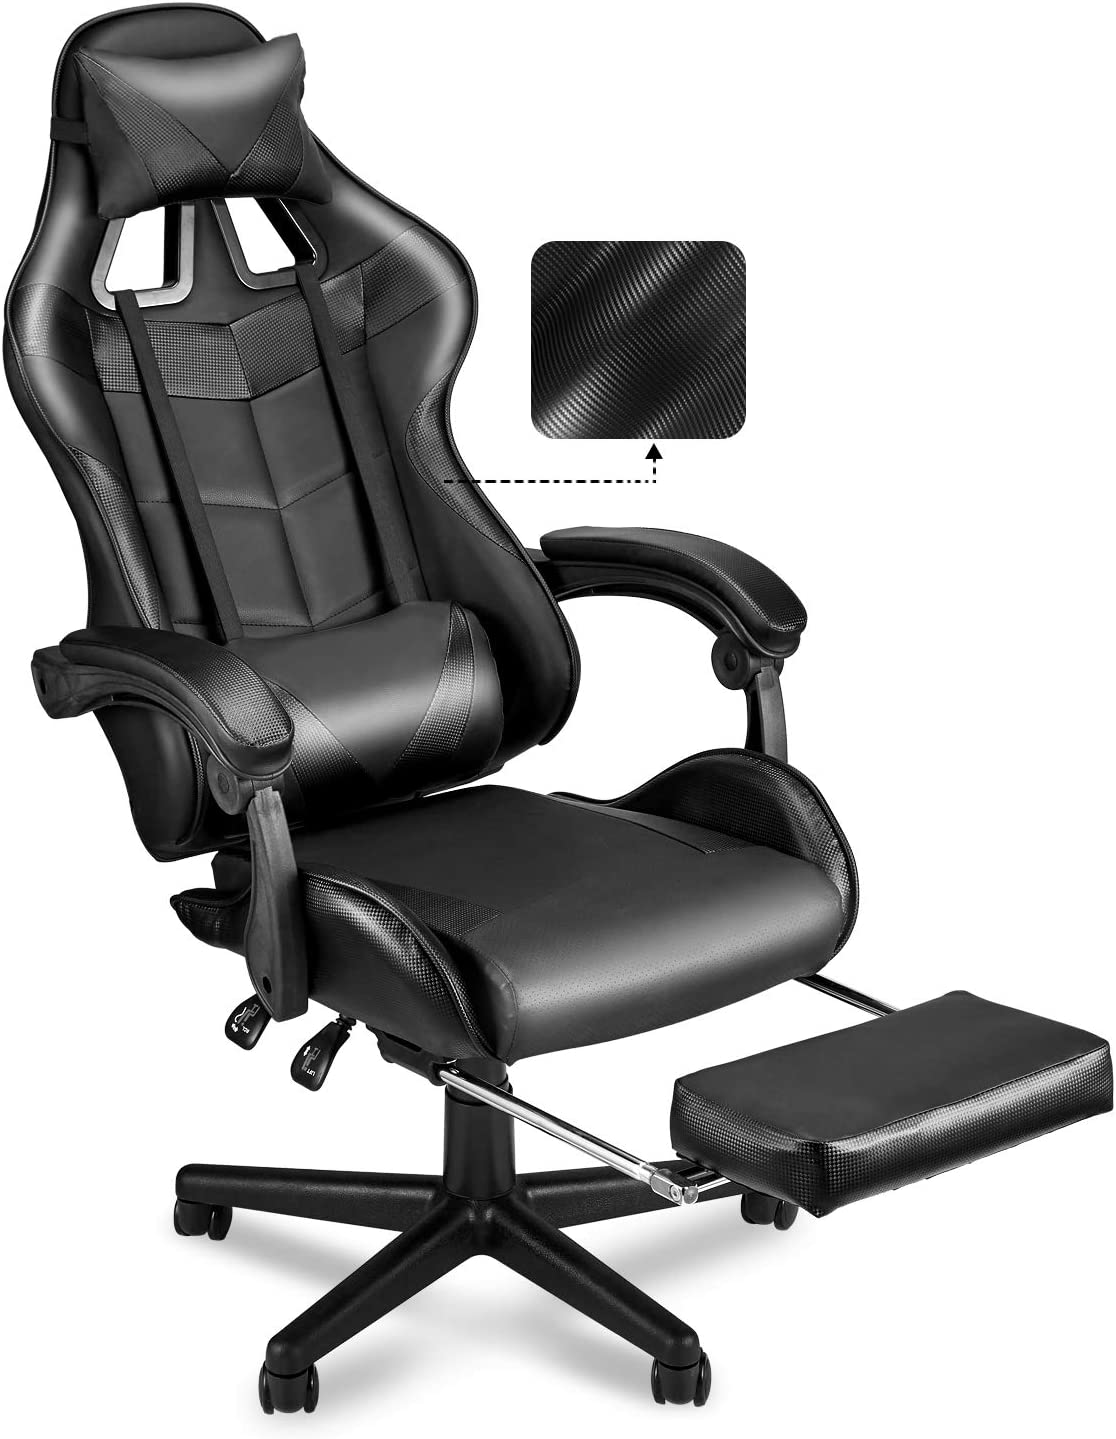 SOONTRANS PC Gaming Chair,Racing Chair for Gaming,Computer Chair,E-Sports Chair,Ergonomic Office Chair with Retractable Footrest and Adjustable Headrest and Lumbar Support-Dark Black